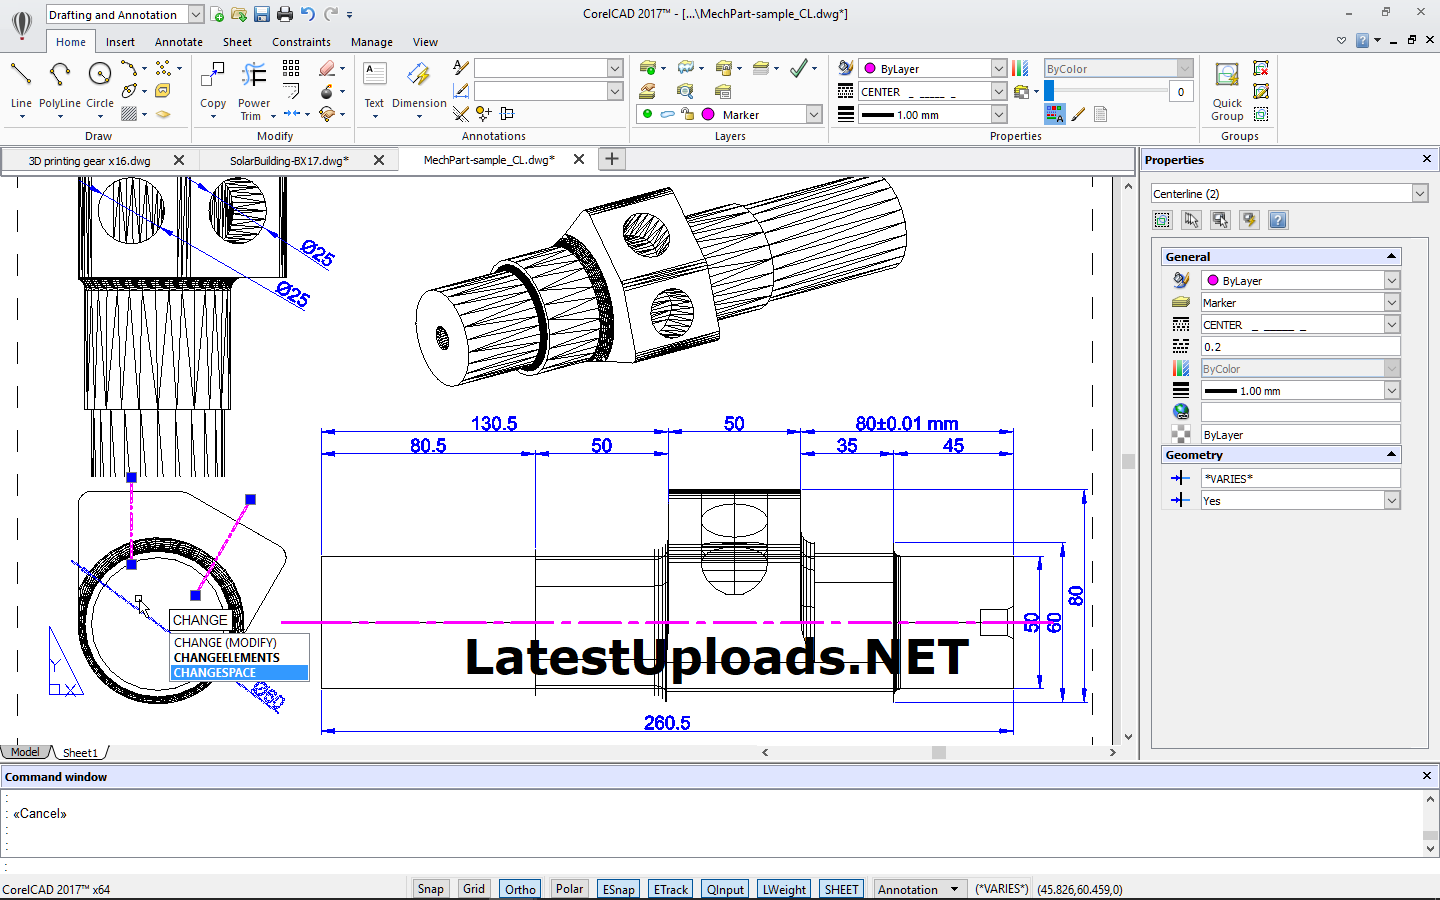 CorelCAD 2017 x64 full version with crack download, CorelCAD 2017 x86 full version with crack download, CorelCAD 64 bit licensed email and registration code, CorelCAD 32 bit licensed email and registration code, CorelCAD registration code